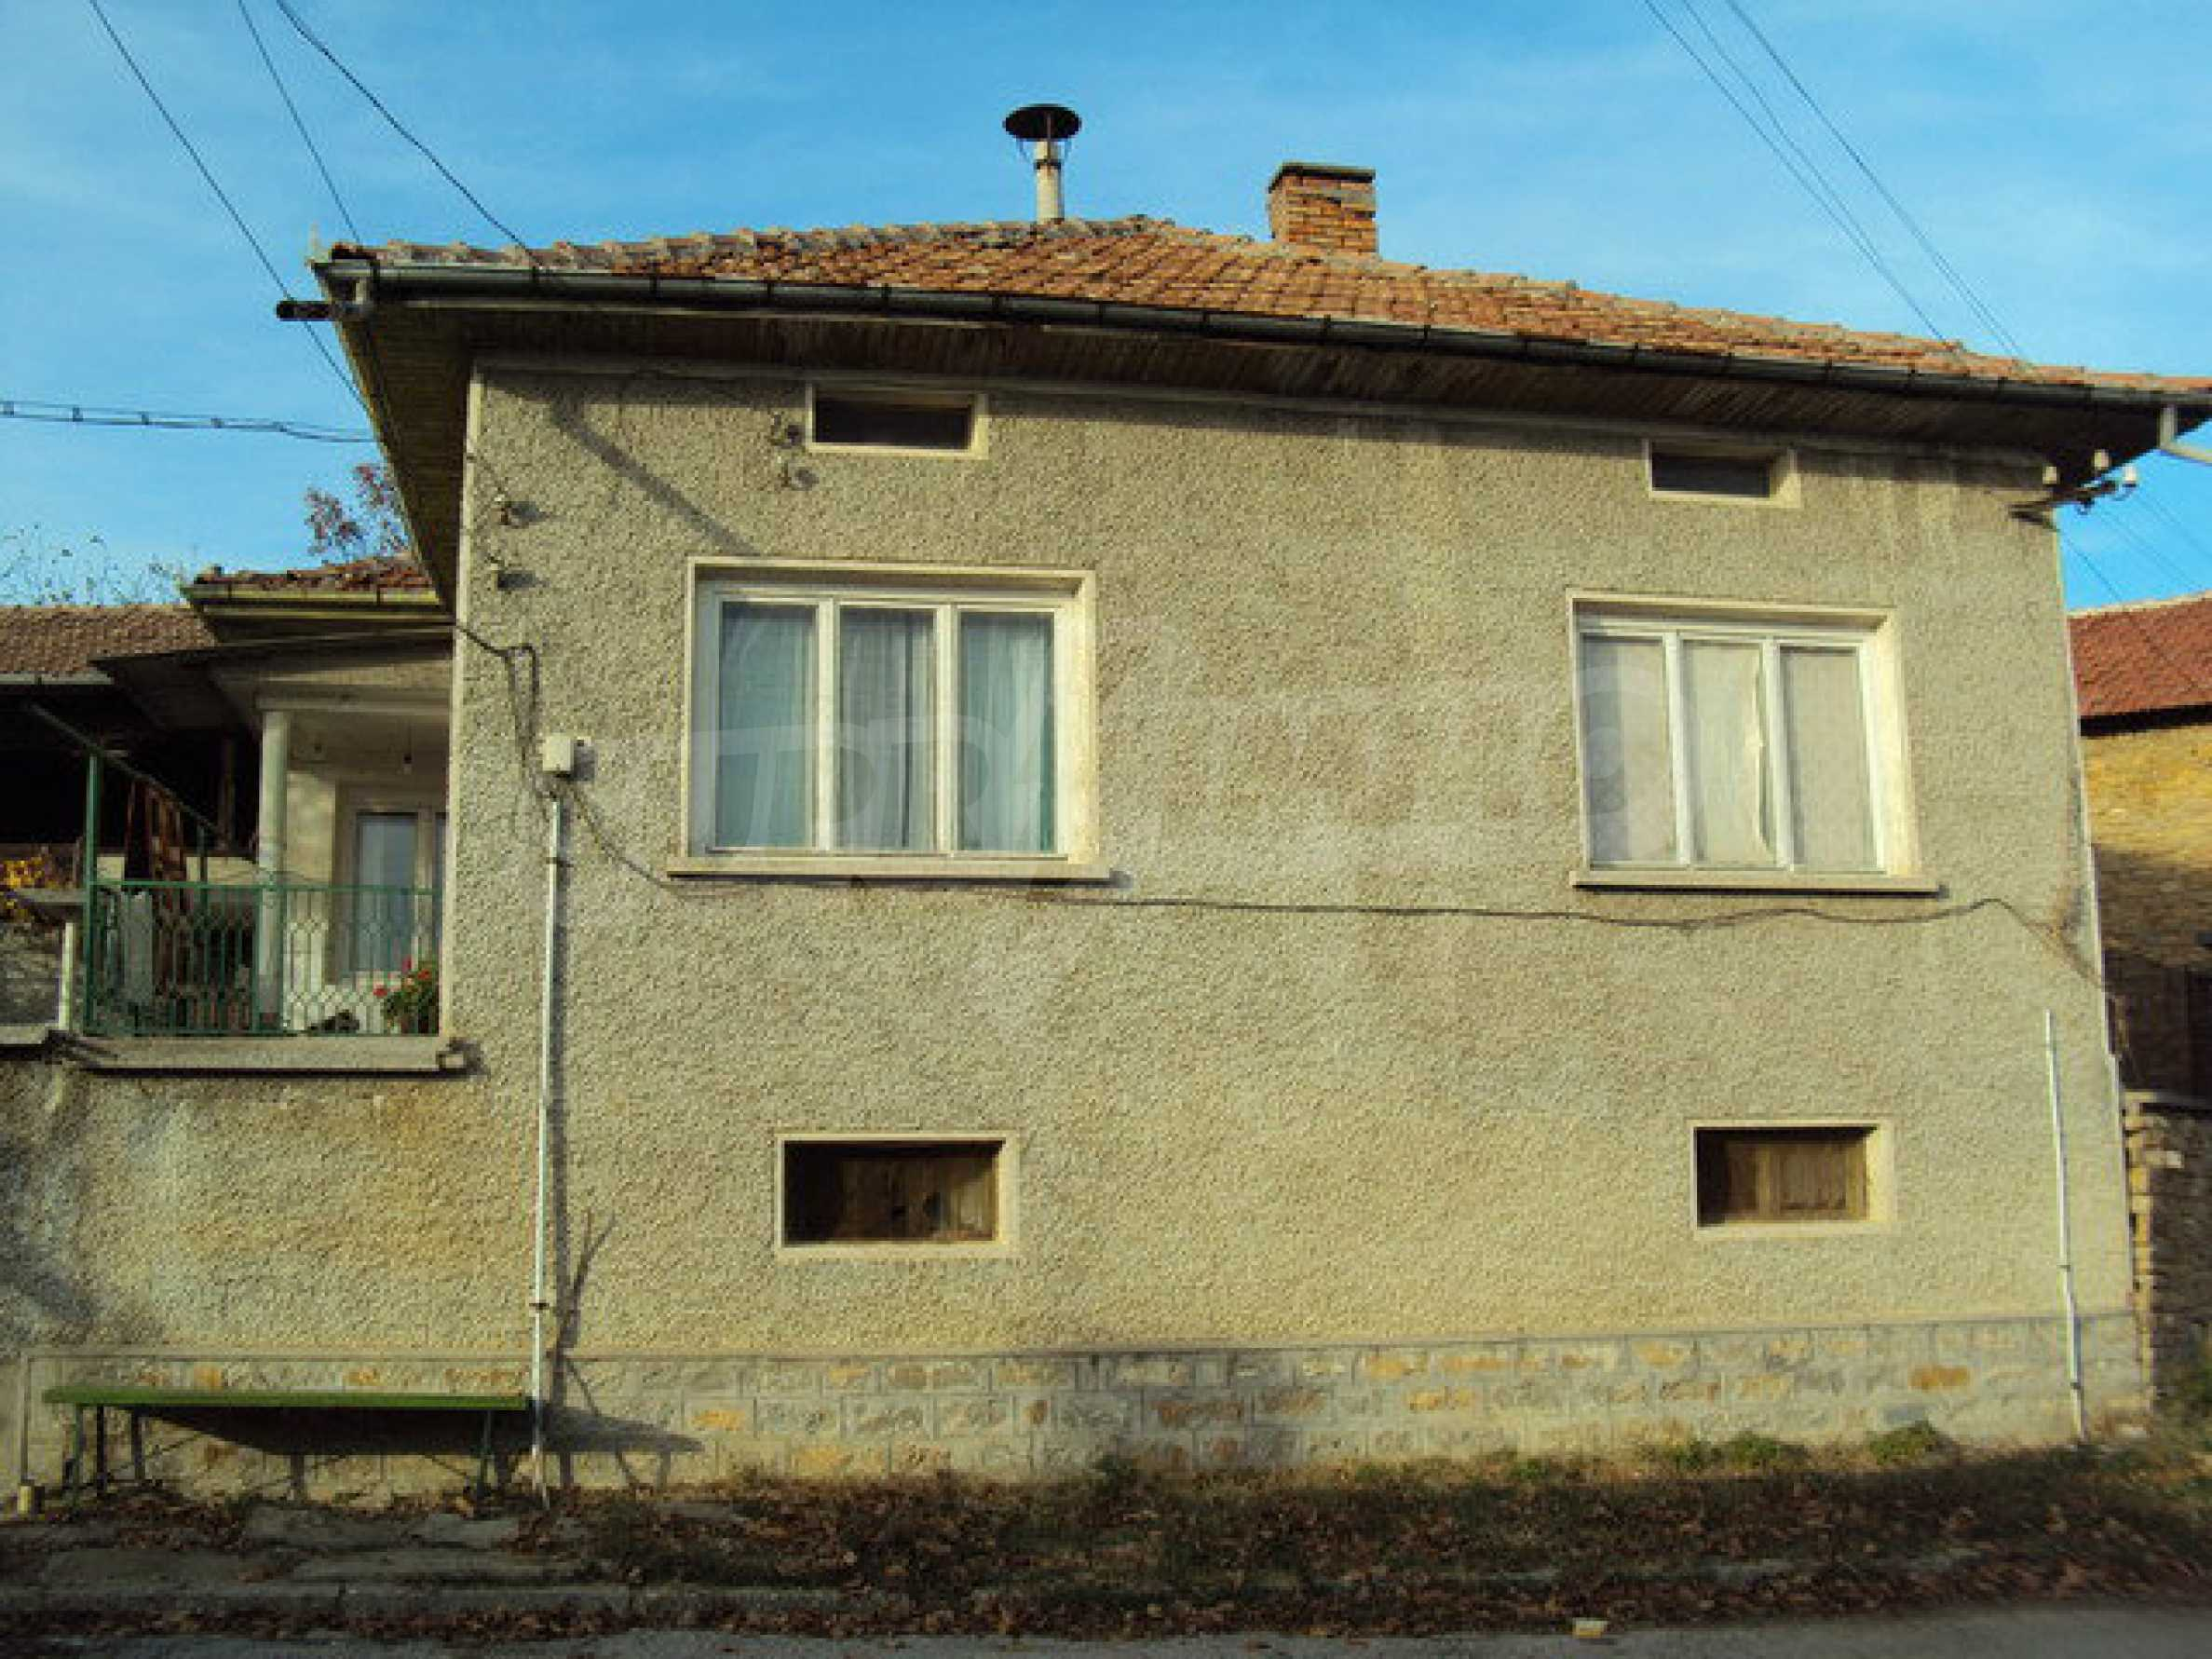 Two-storey house in a village 40 km. from Veliko Tarnovo